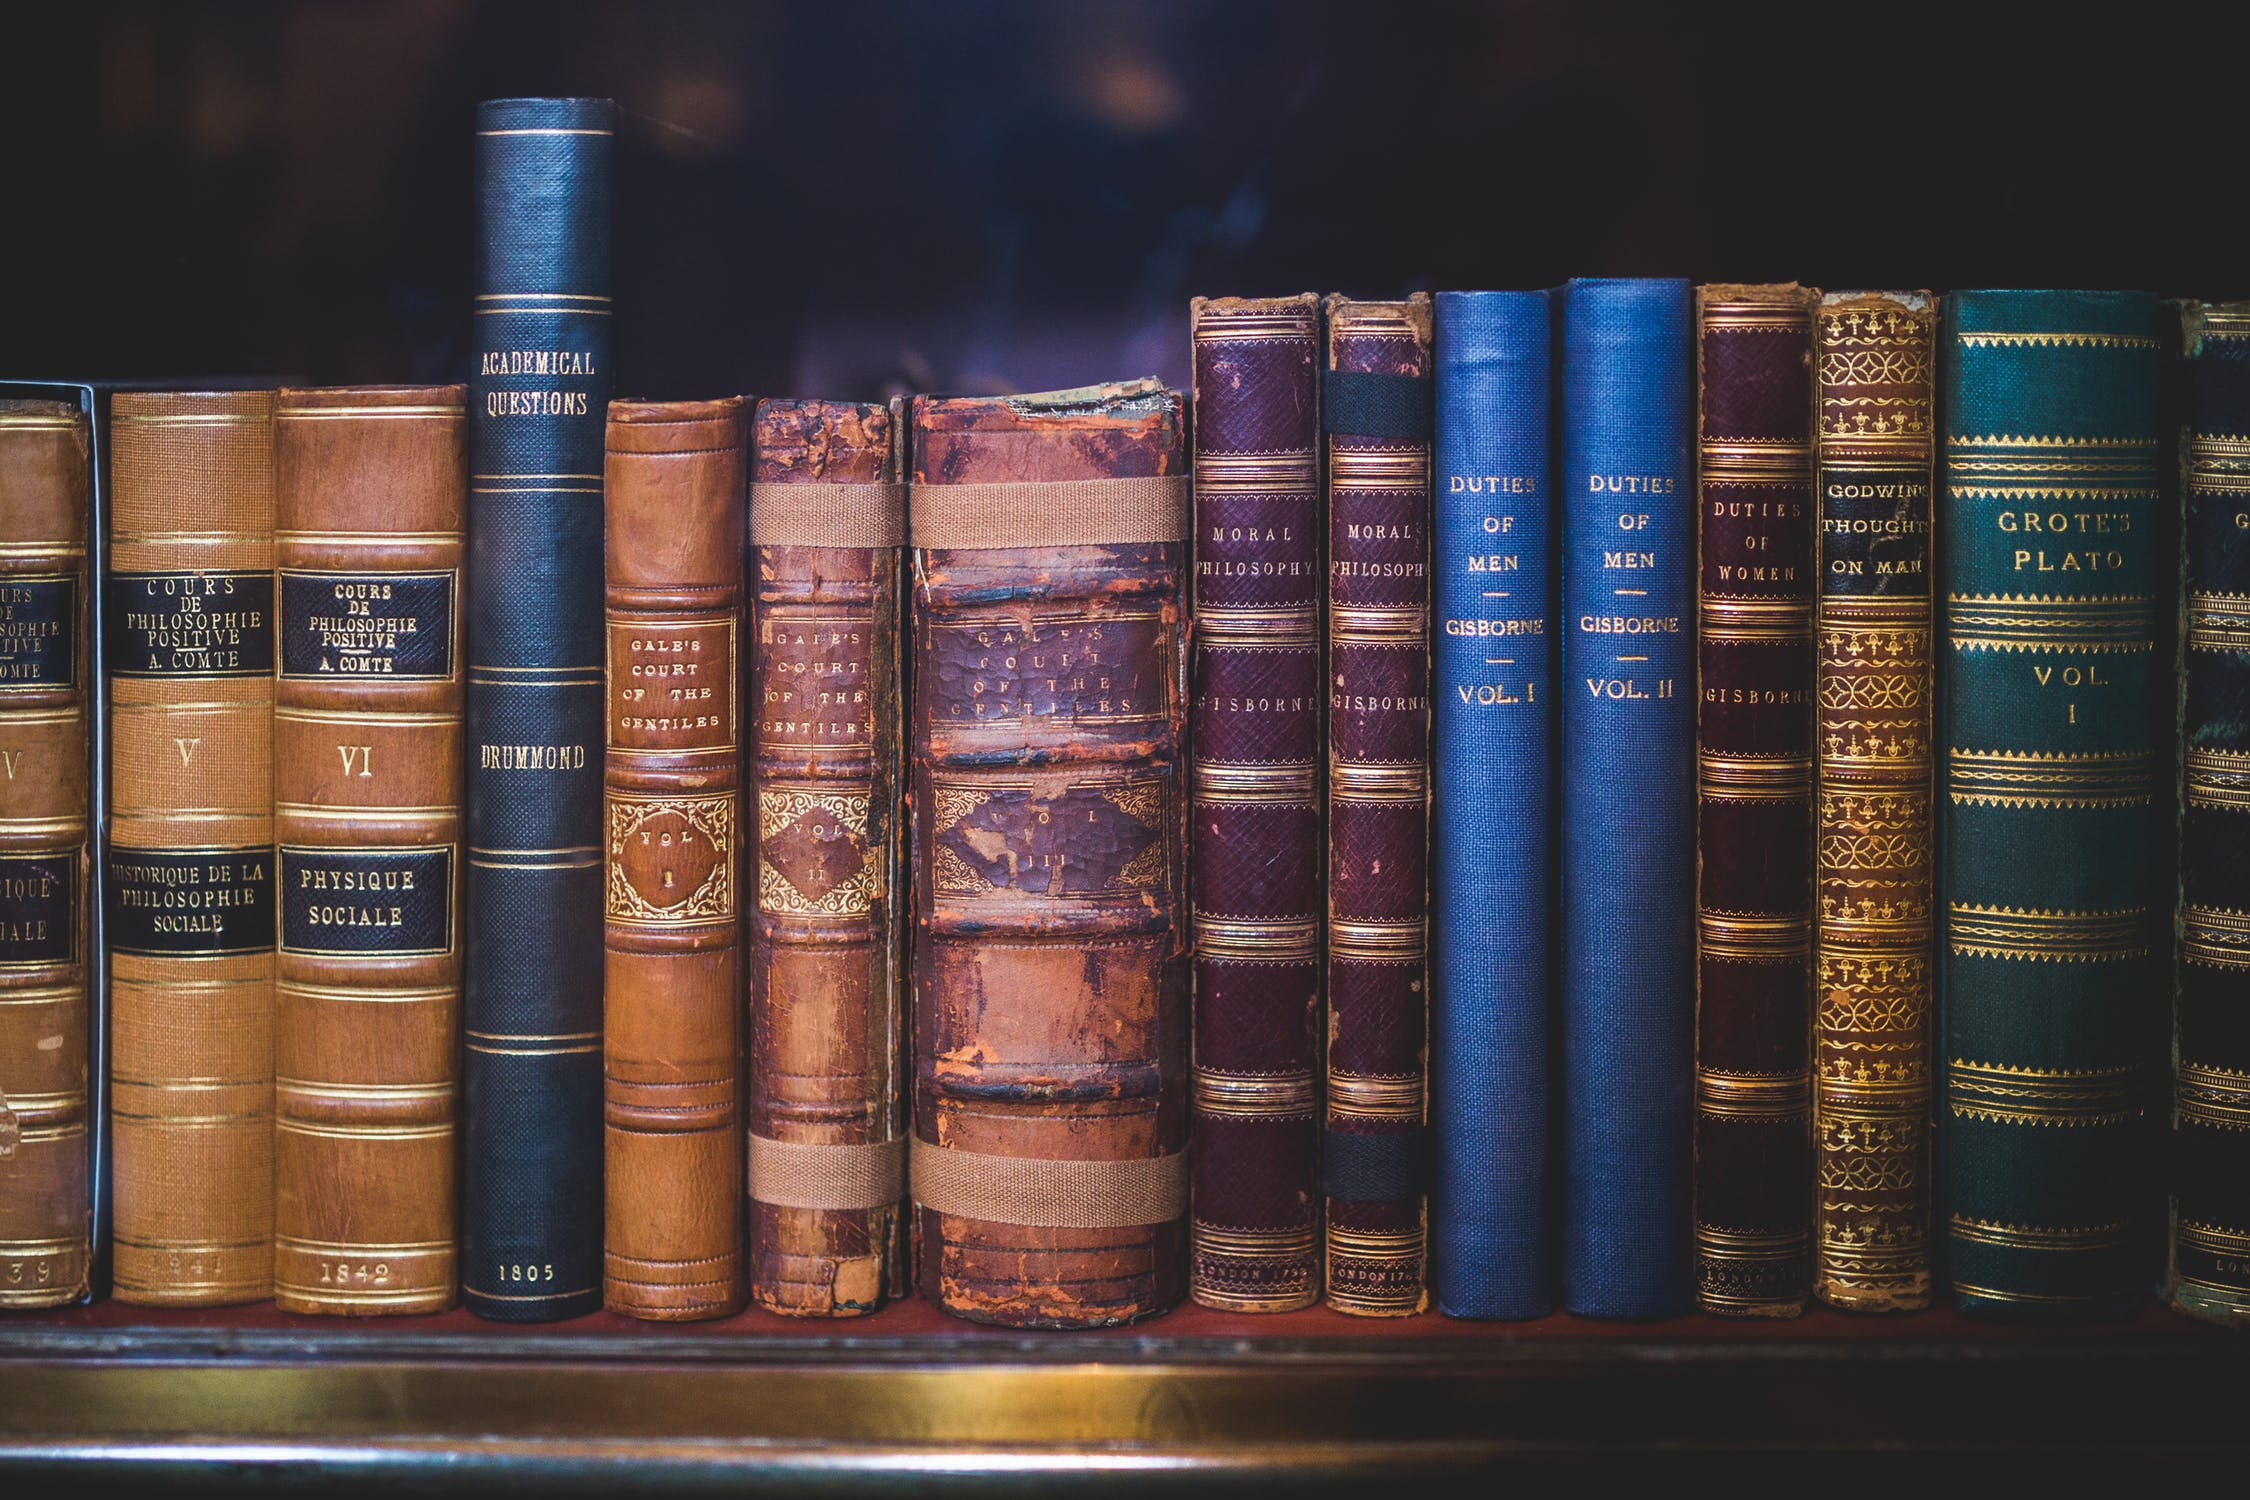 My top 10 books and my next 10 reads